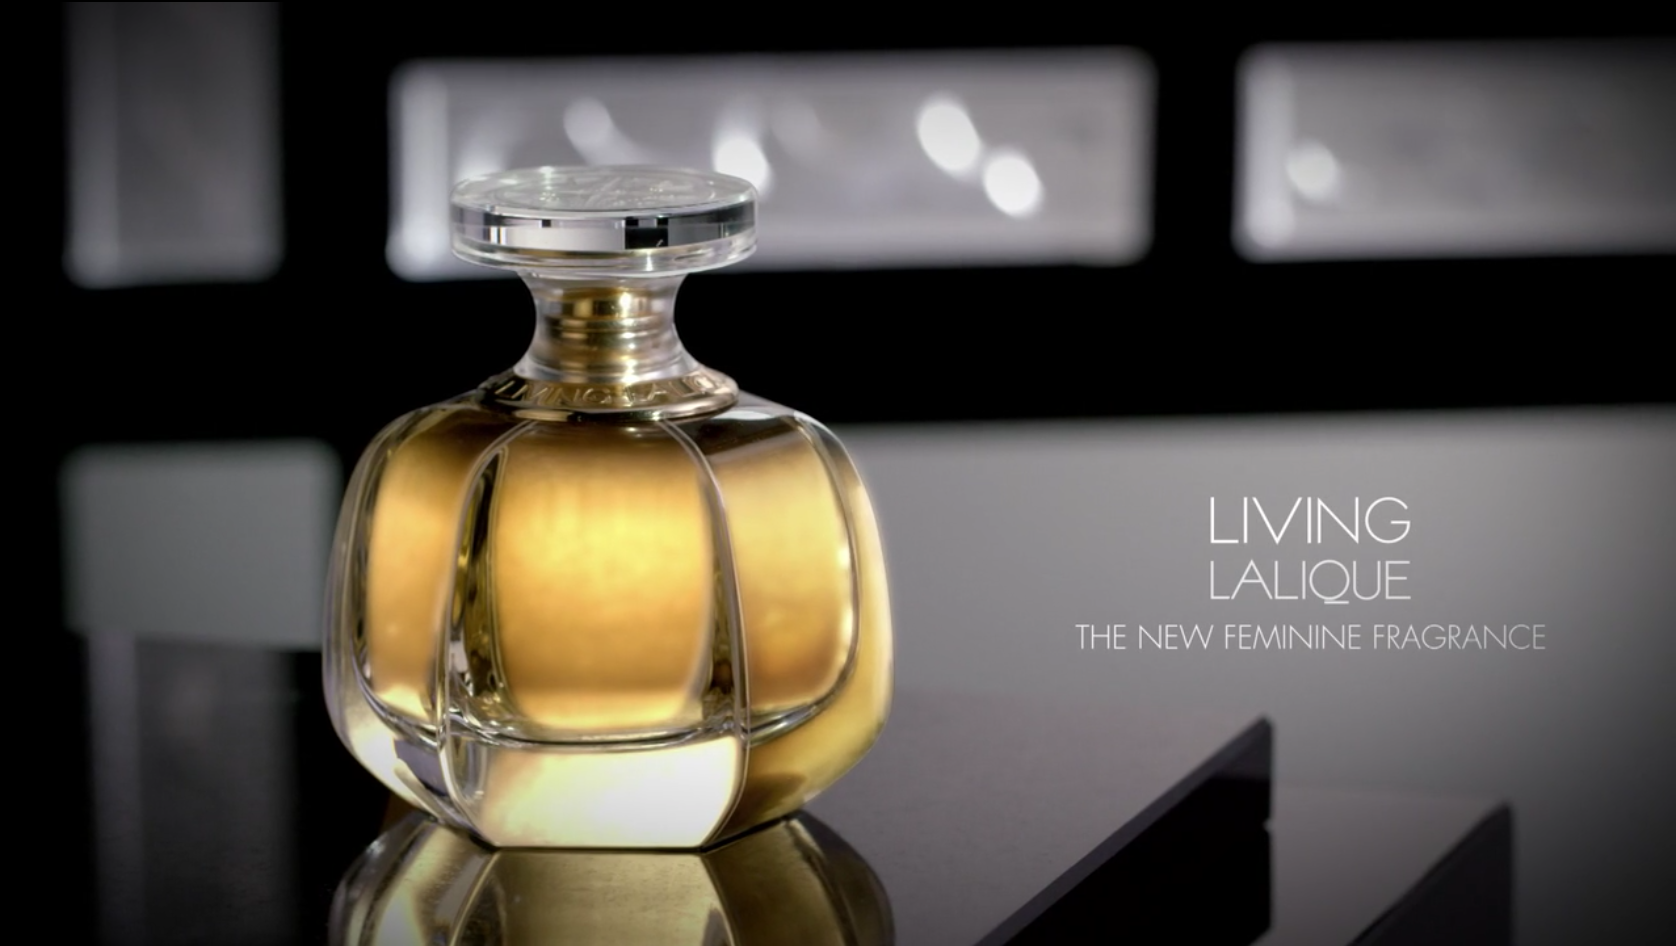 Living Lalique